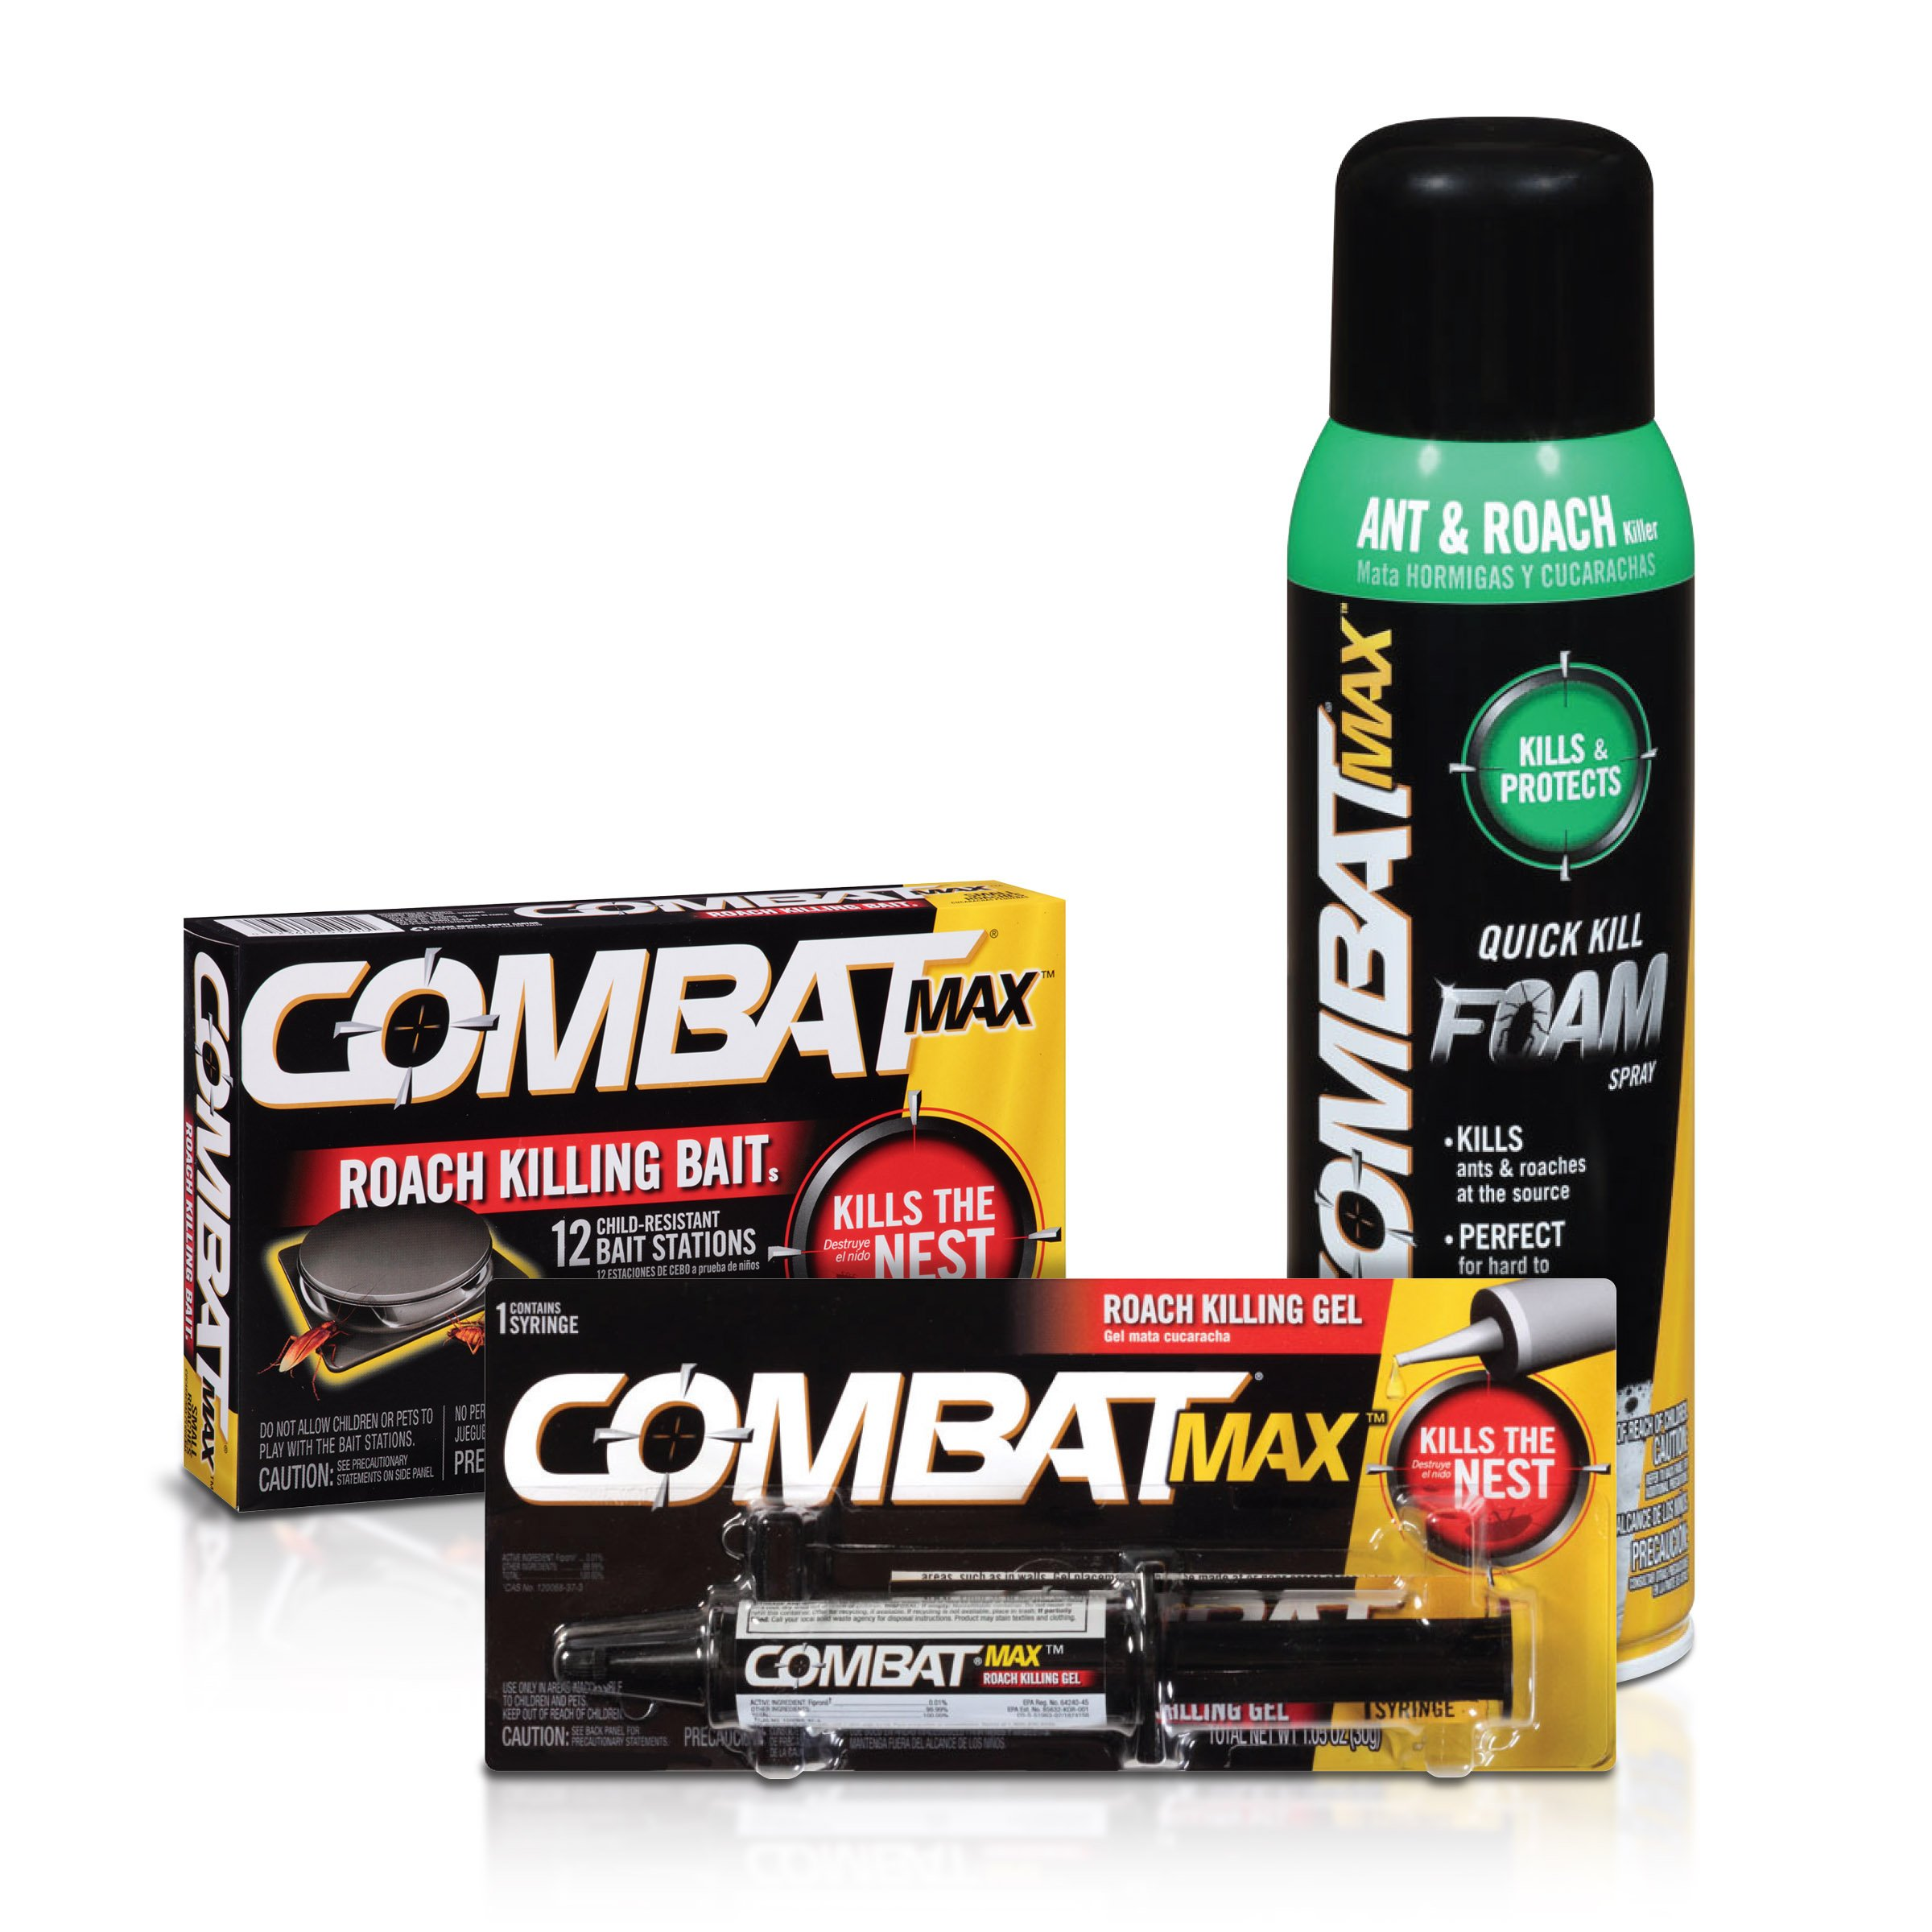 Combat Max Small Roach Control Products - Bait, Gel, and Foam Spray by Combat